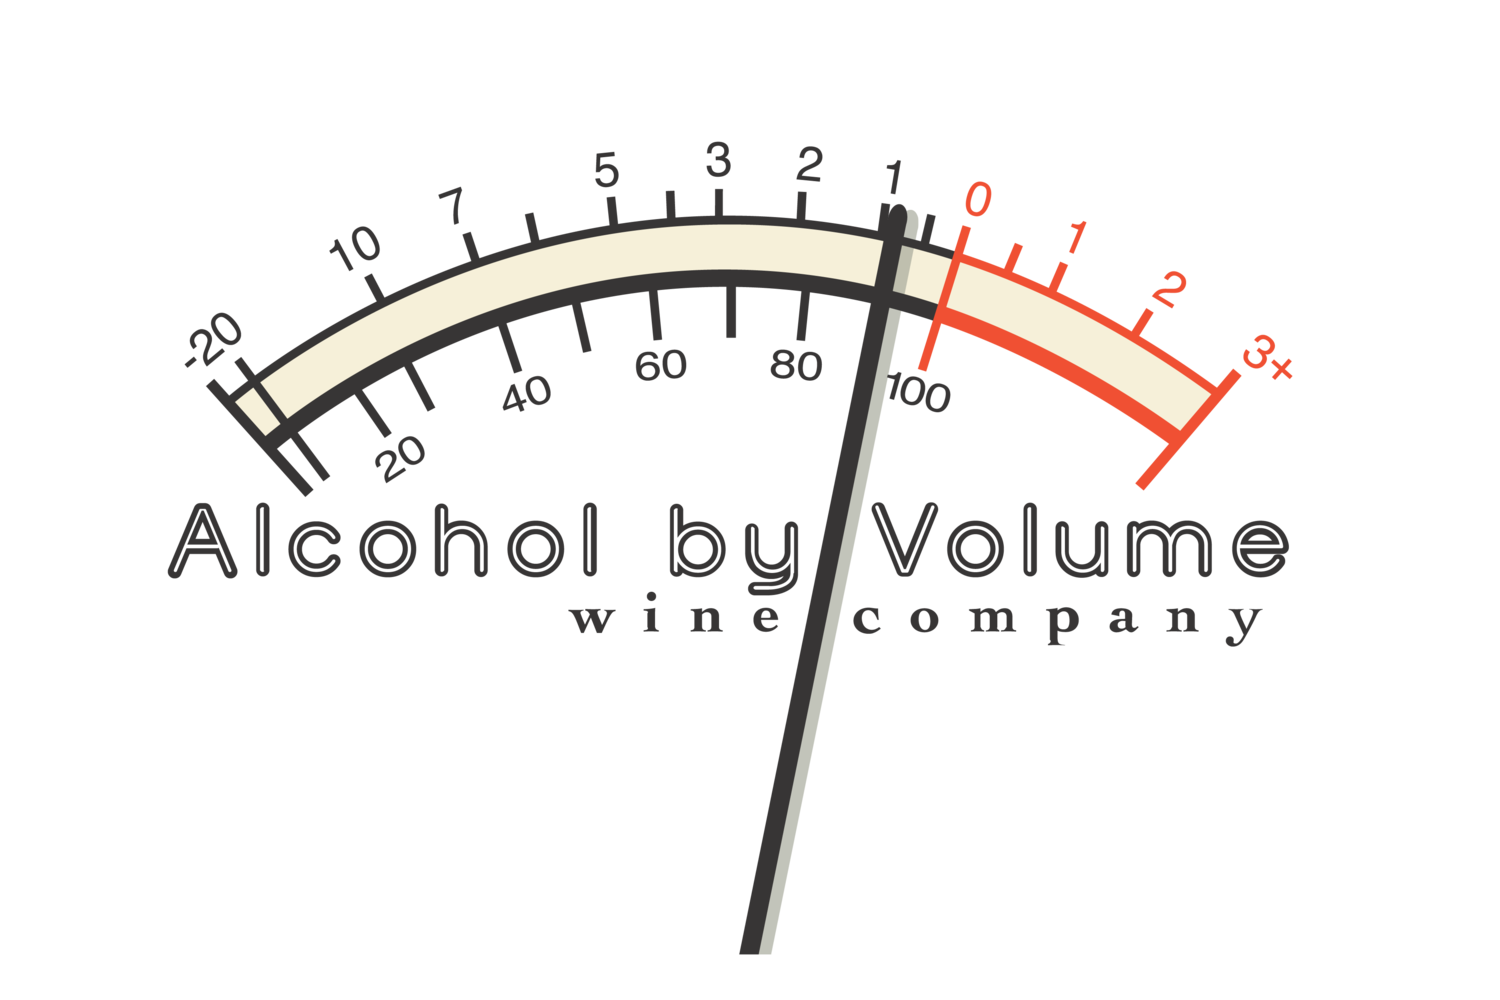 5 alcohol by volume